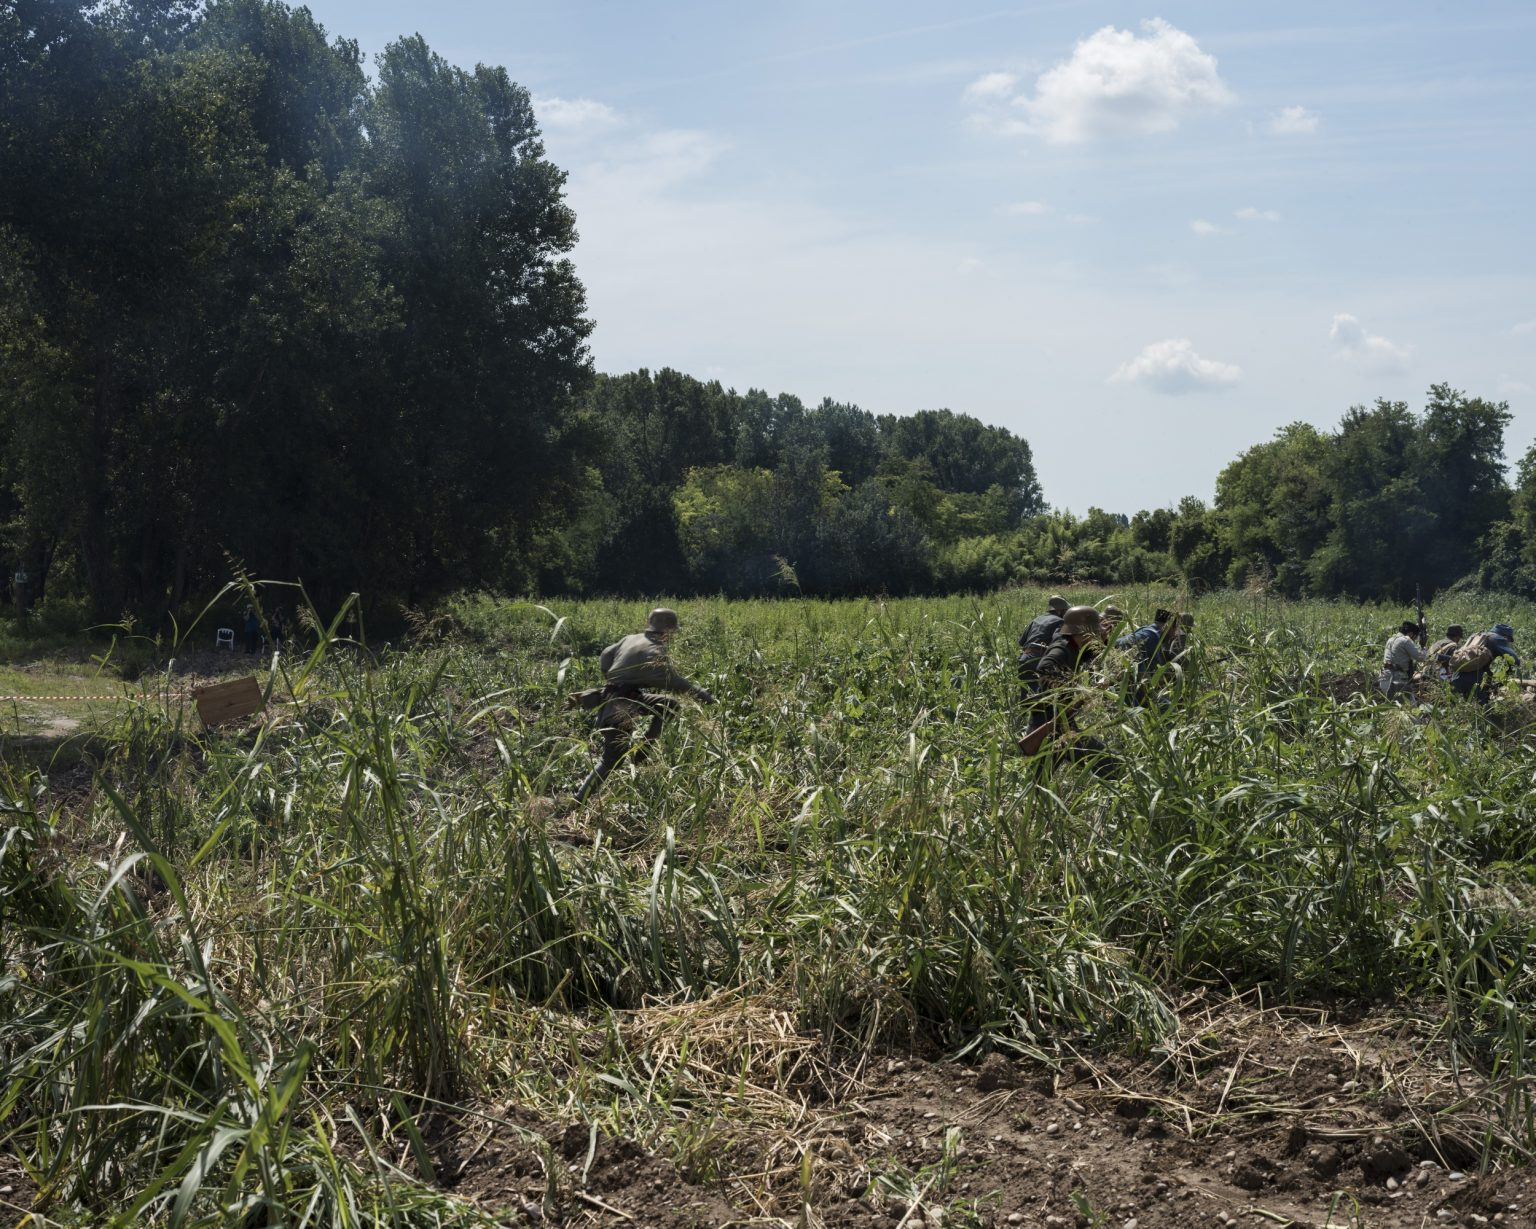 Breda di Piave (Treviso), Italy. First World War reenactment on the banks of the Piave river. Austro Hungarian and German re enactors running into the battle.